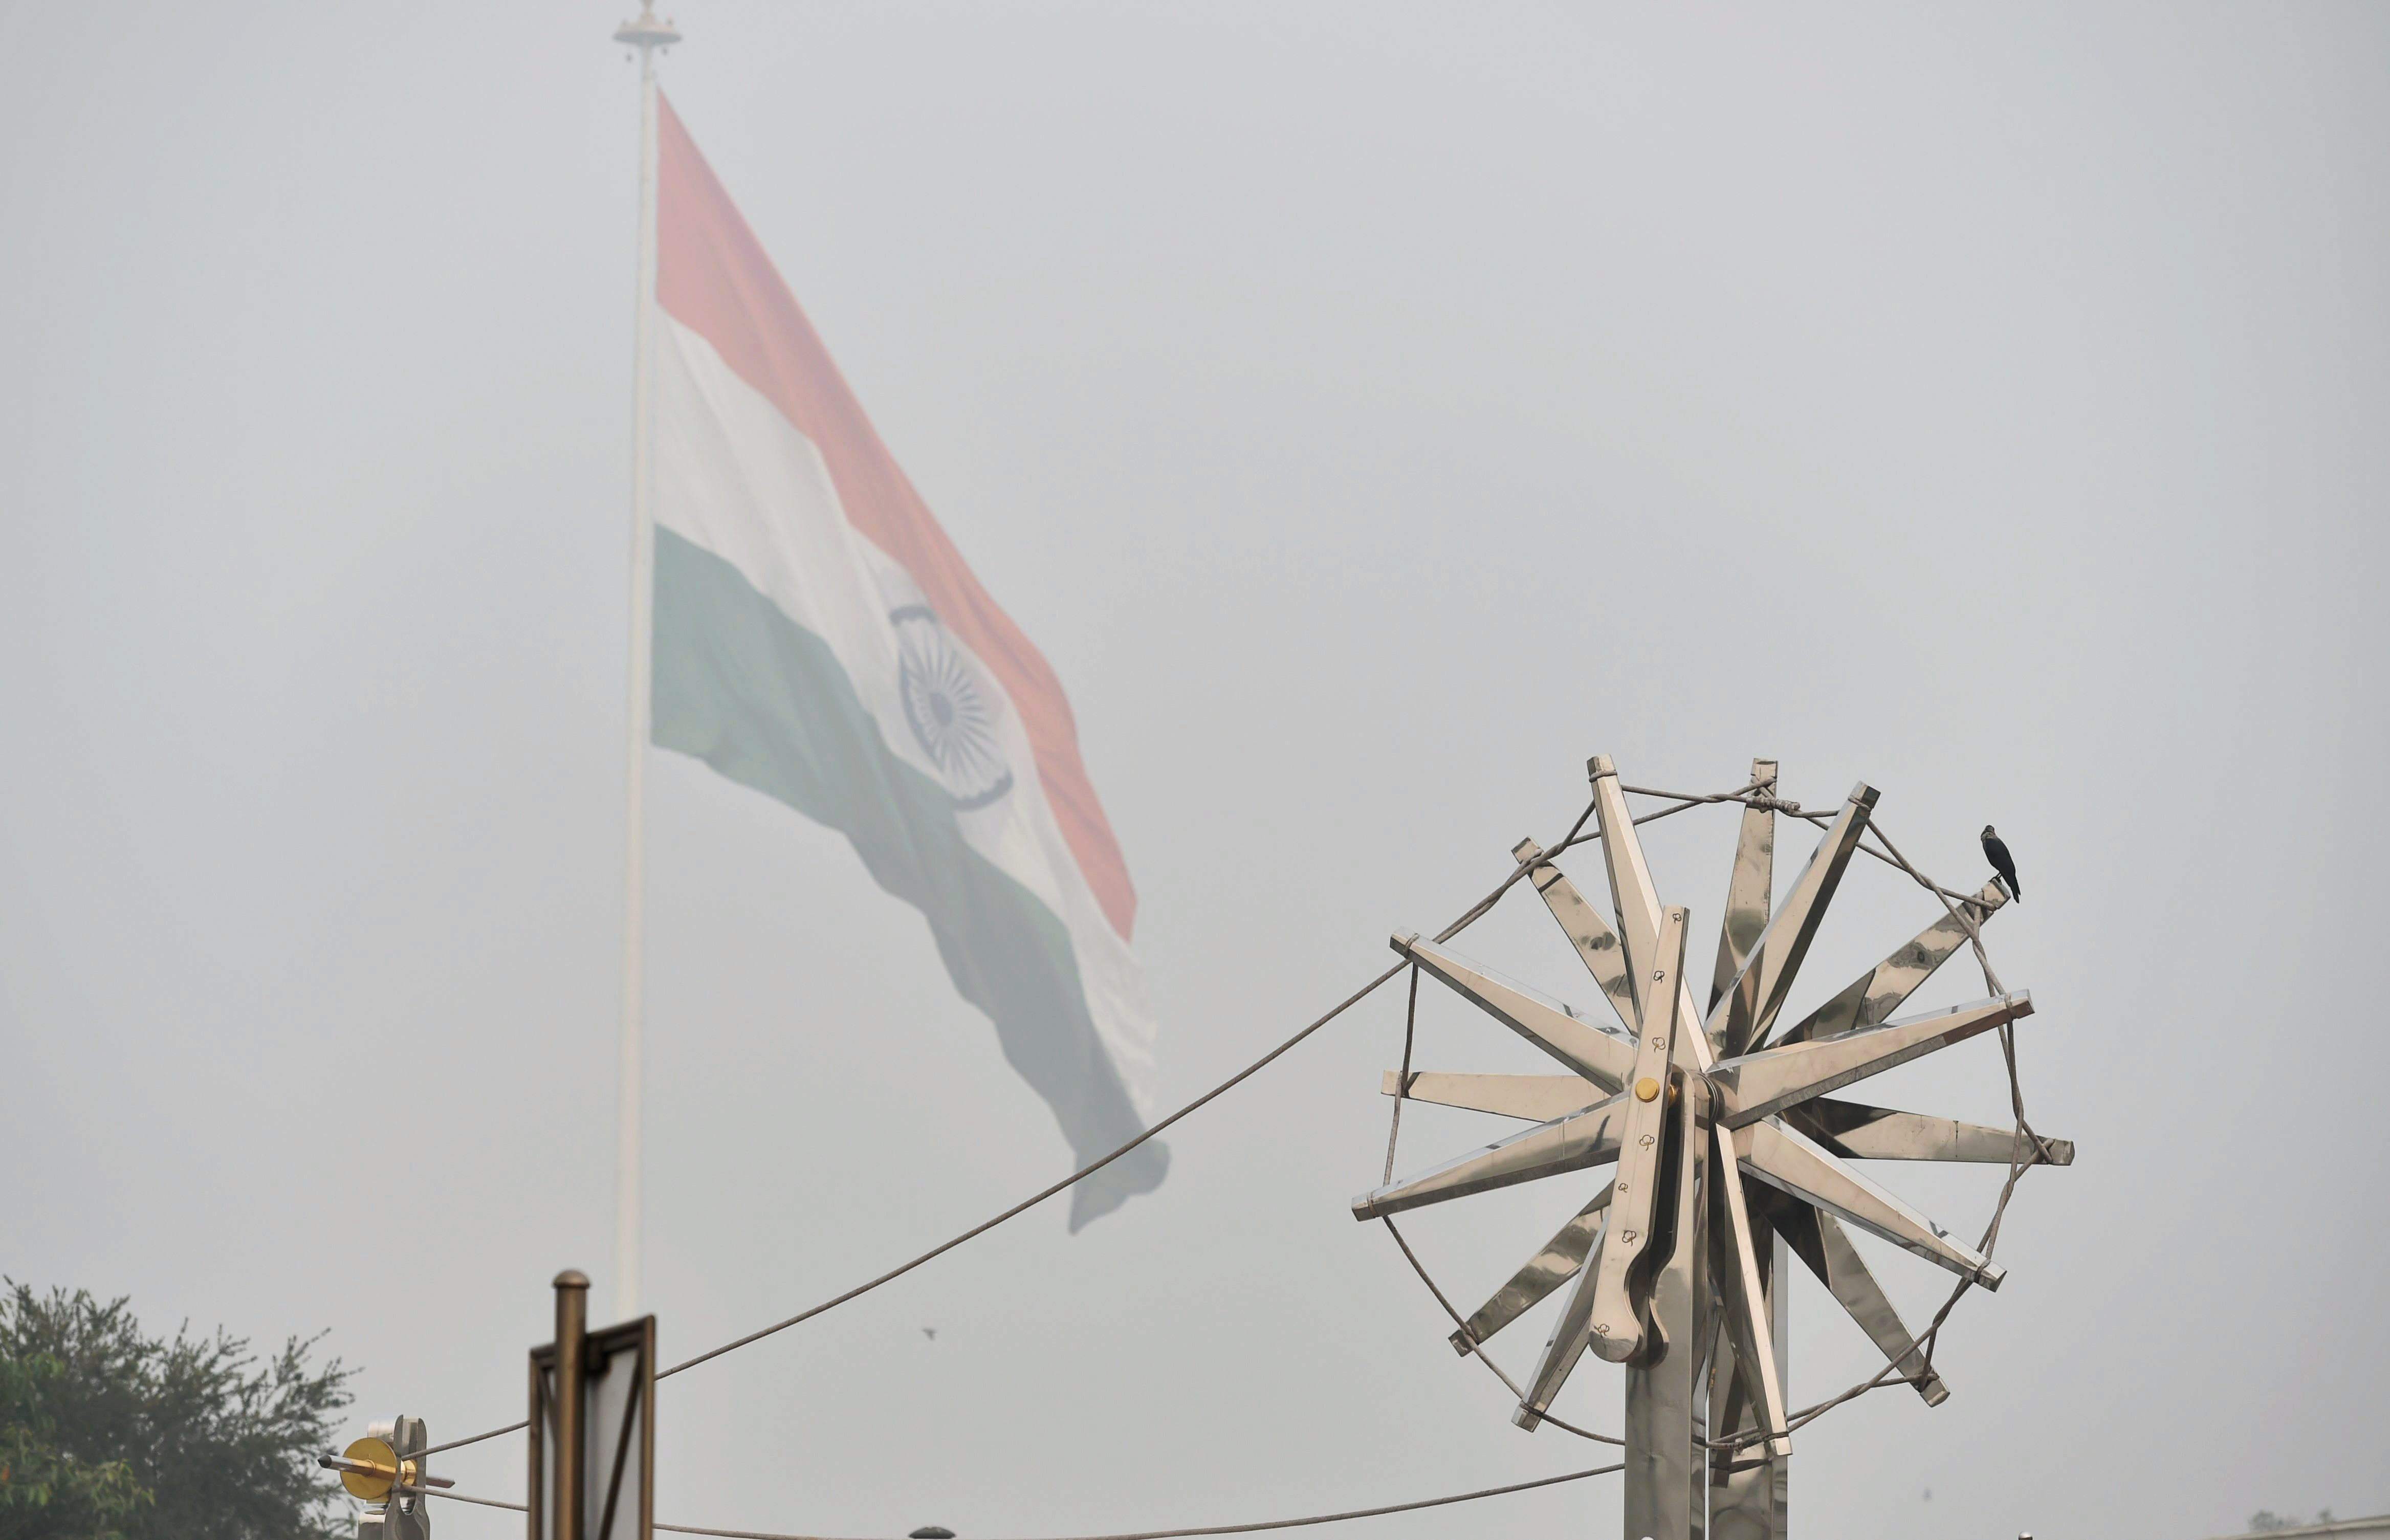 New Delhi: View of the steel ''Charkha'', installed at Rajiv Chowk, enveloped by heavy smog in New Delhi on Wednesday. The smog and air pollution continue to be above the severe levels in Delhi NCR. PTI Photo by Vijay Verma (PTI11_8_2017_000235A)